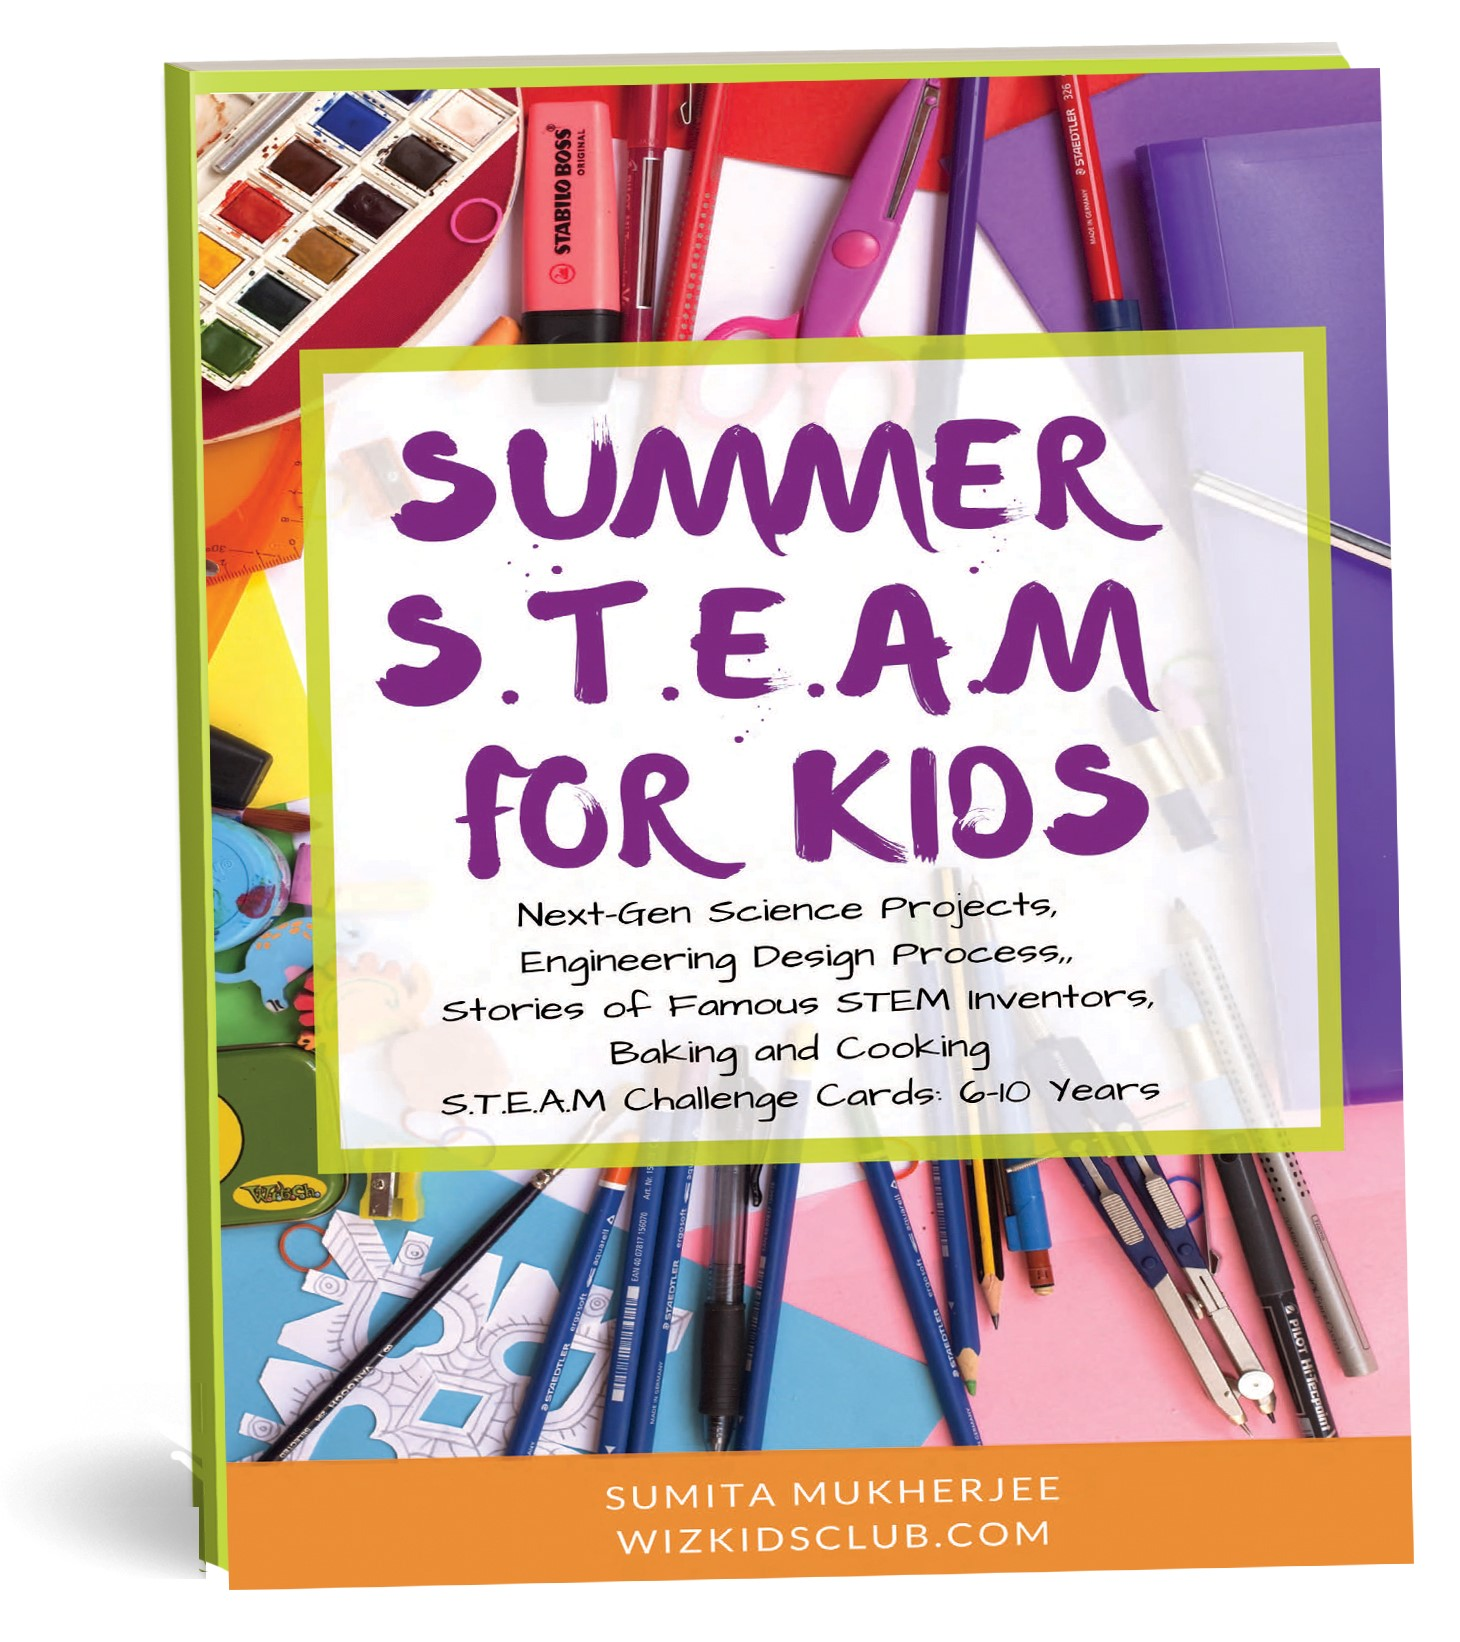 summer steam for kids 6 to 10 years